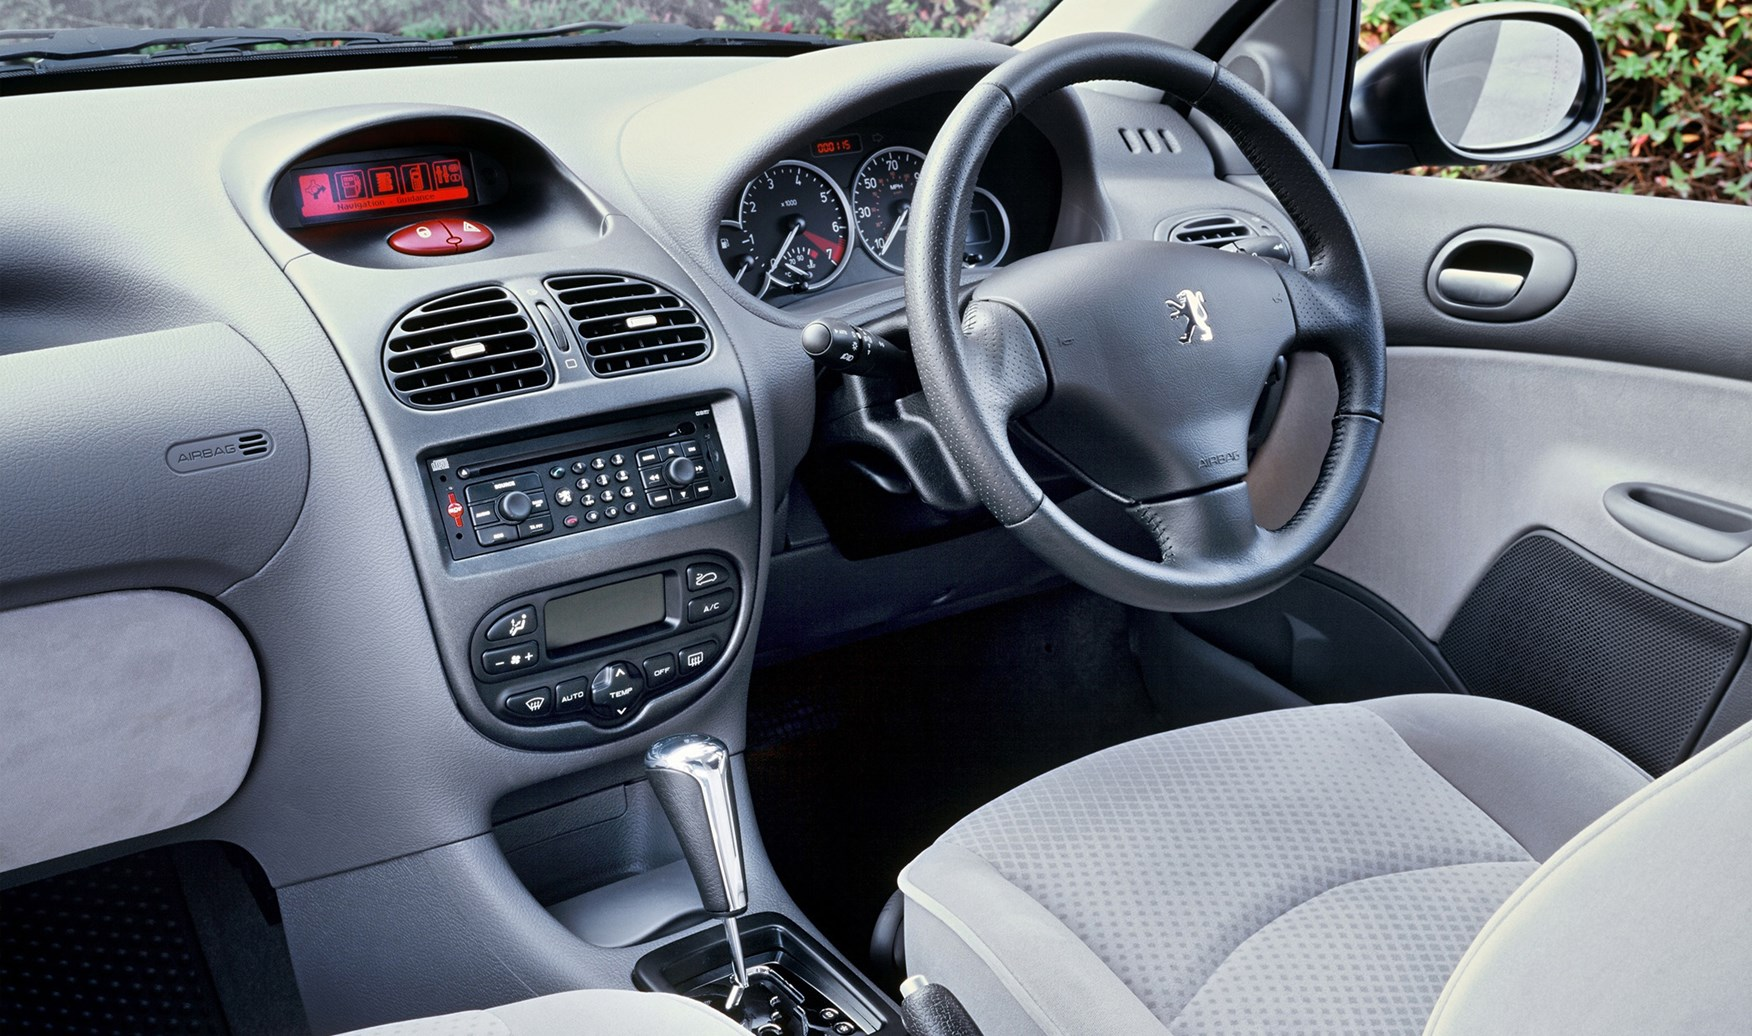 peugeot 206 interior images galleries with a bite. Black Bedroom Furniture Sets. Home Design Ideas